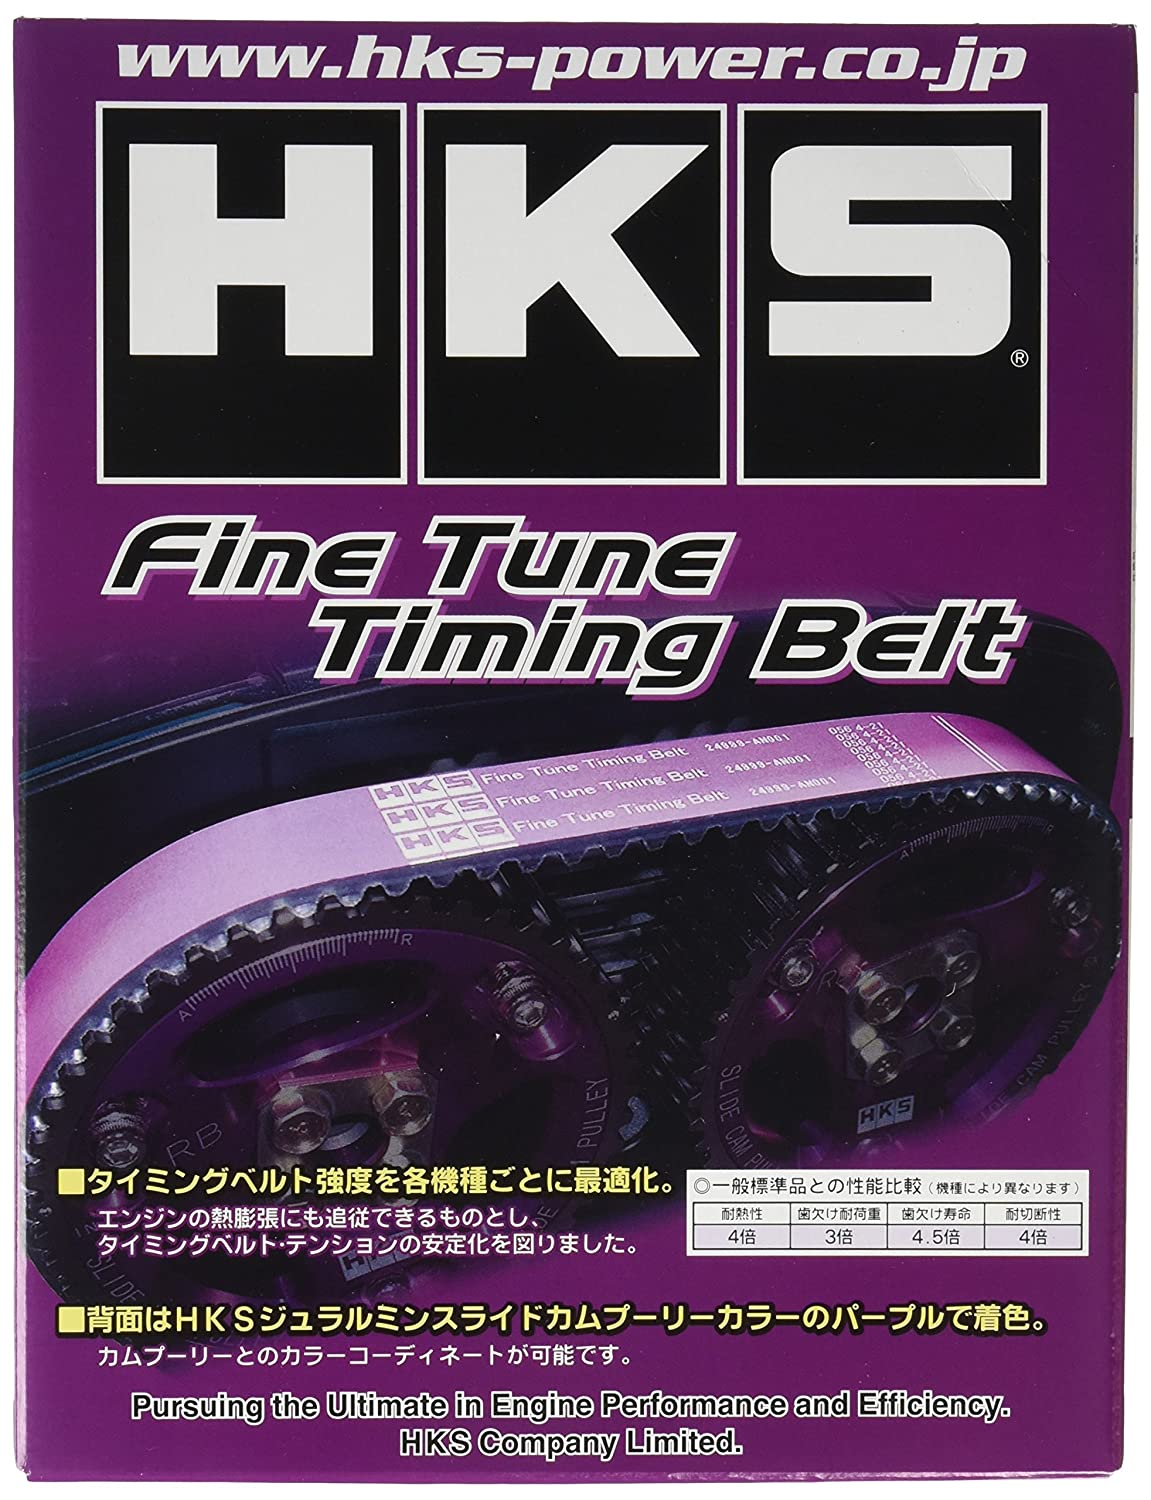 HKS 24999-AN001 Timing Belt (Nissan Rb20Det Rb25Det Rb26Dett)